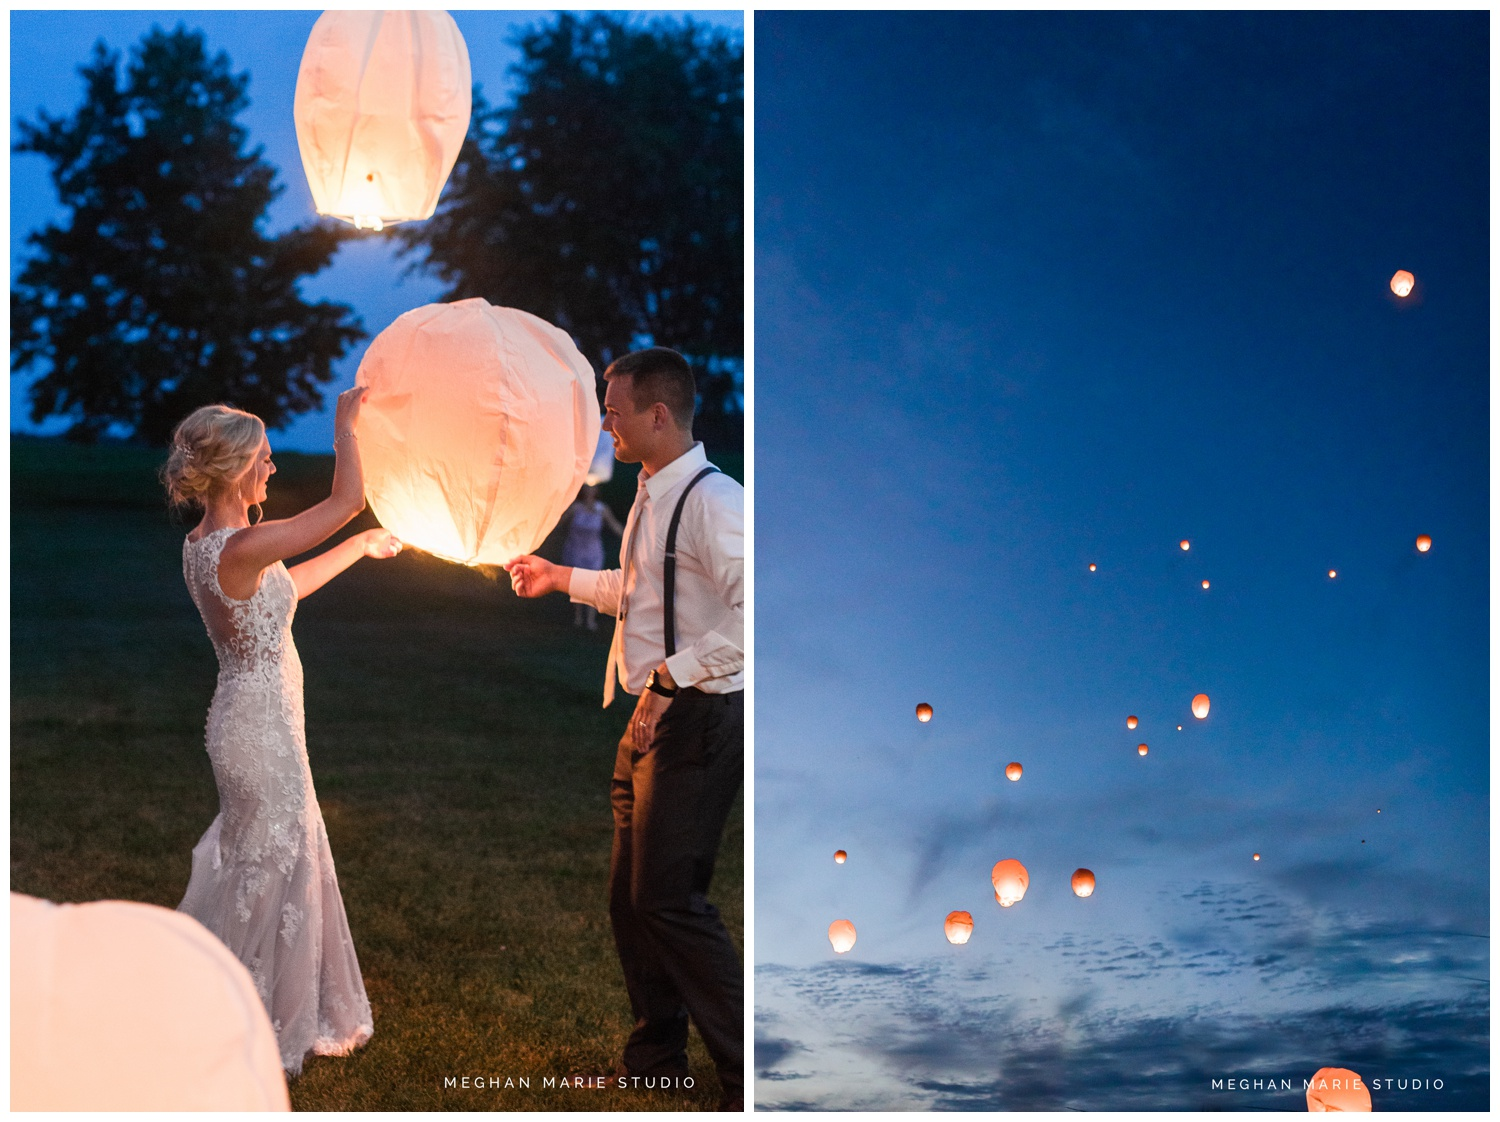 meghan marie studio wedding photographer ohio troy dayton columbus small town rustic rural farm cows vintage mauves dusty rose pinks whites ivorys grays f1 sound paper lanterns pearls_0663.jpg